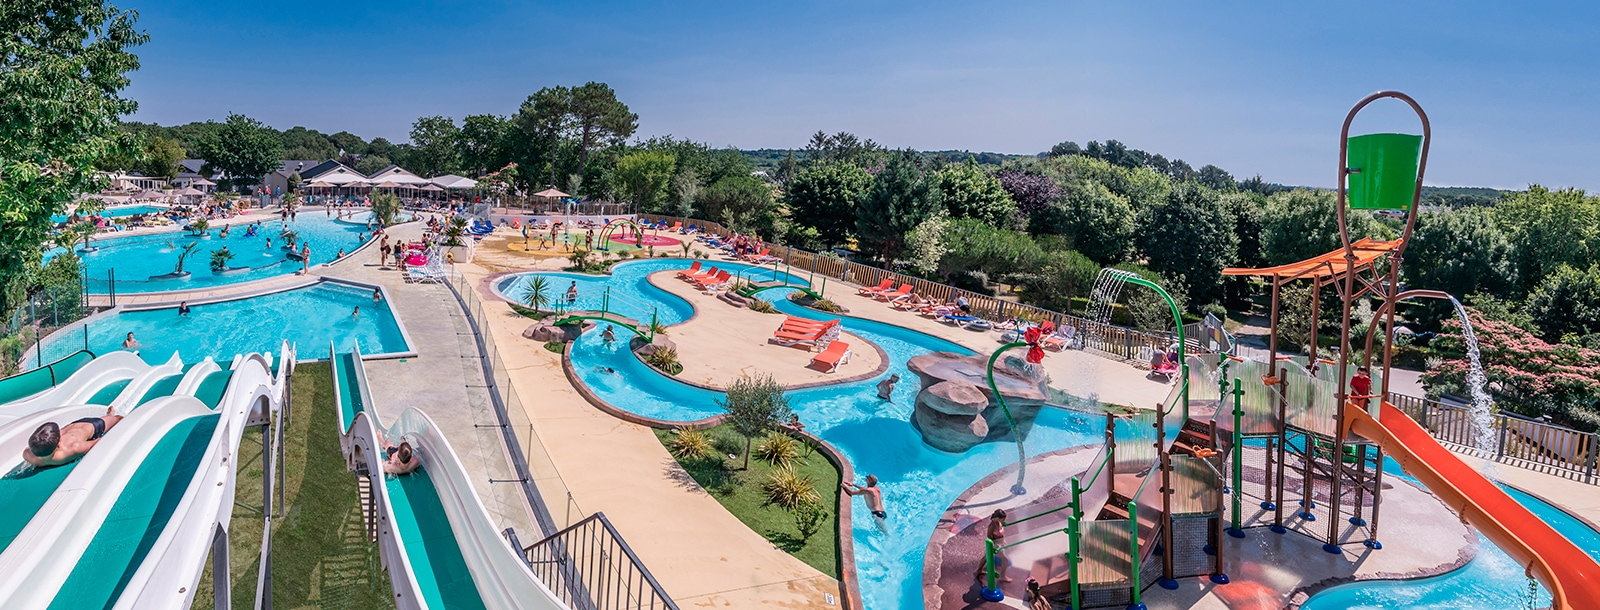 New aquafun park and extra large waterpark!